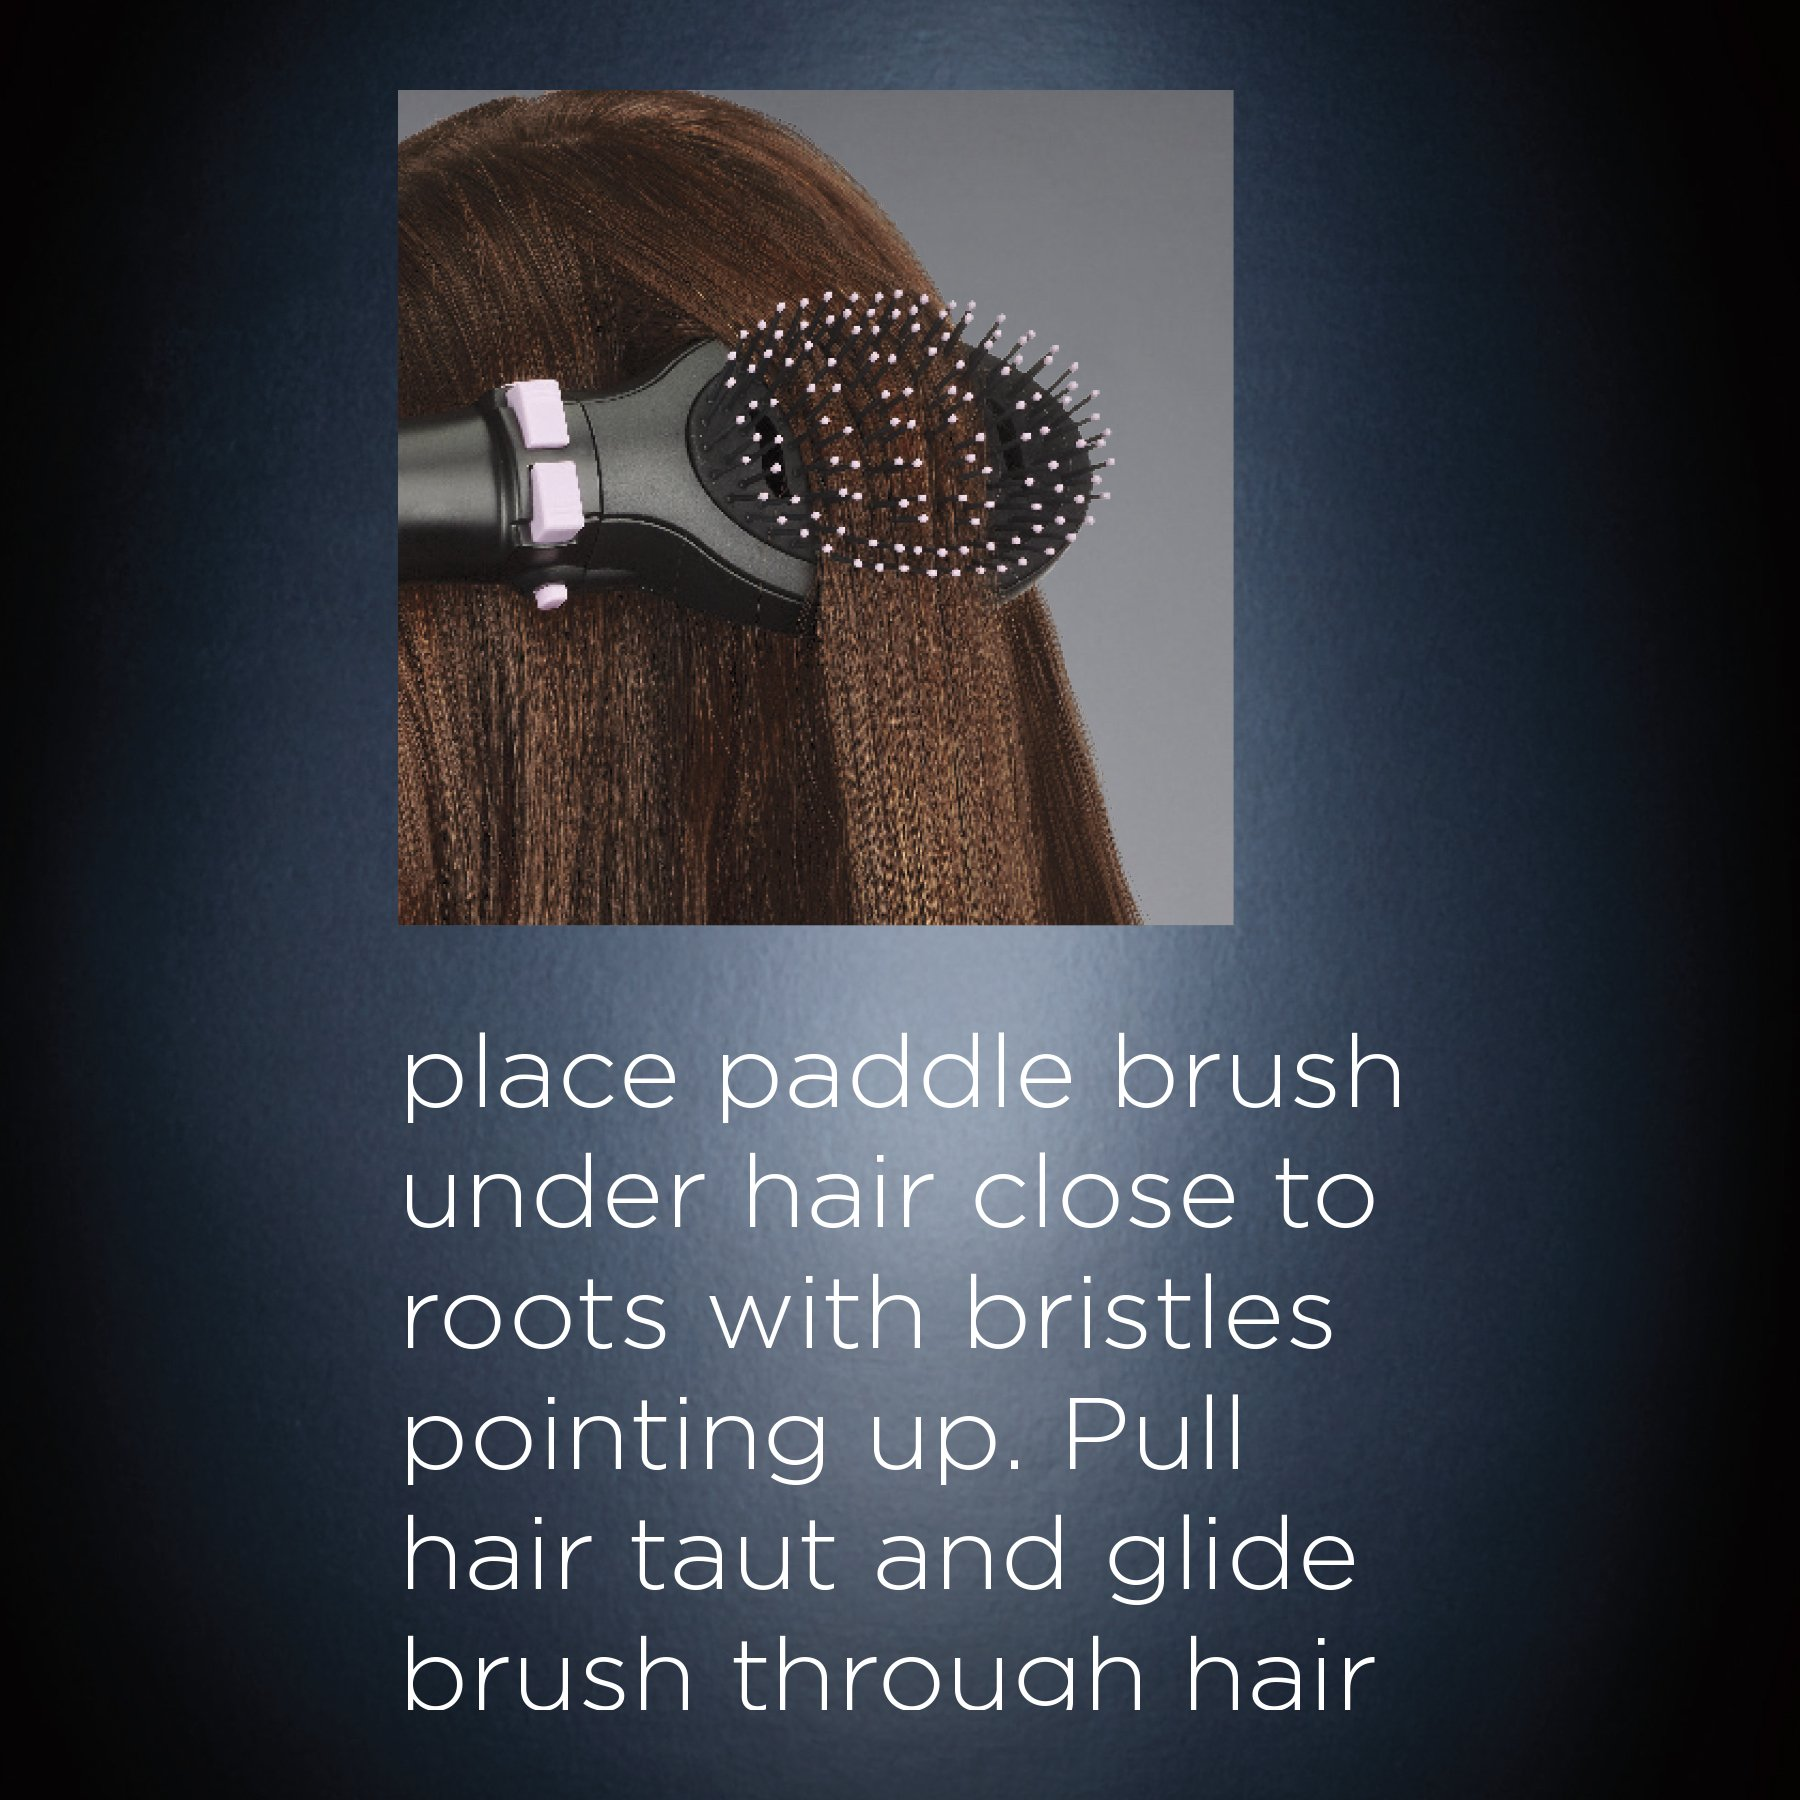 INFINITIPRO BY CONAIR Tourmaline Ceramic Hot Air Brush Styler + Paddle Brush Attachment; Get A Salon Blowout at Home by Conair (Image #6)